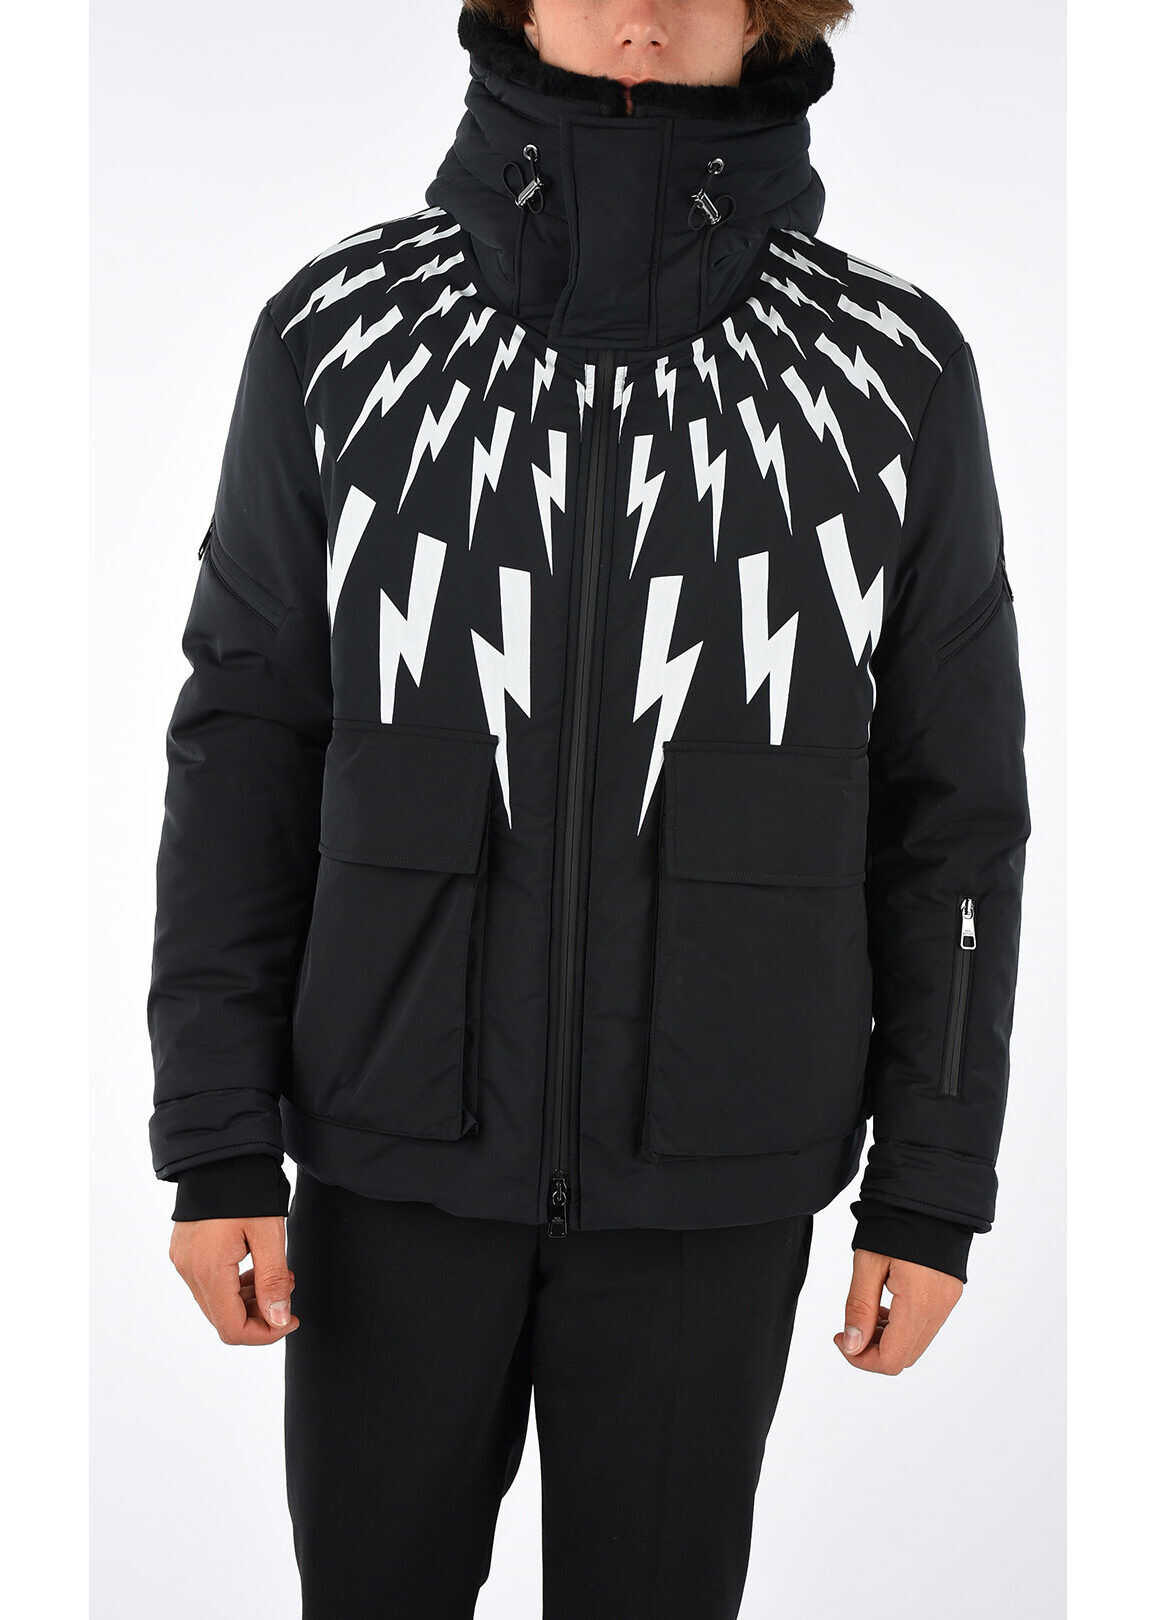 Neil Barrett Thunder Printed Jacket DARK GRAY